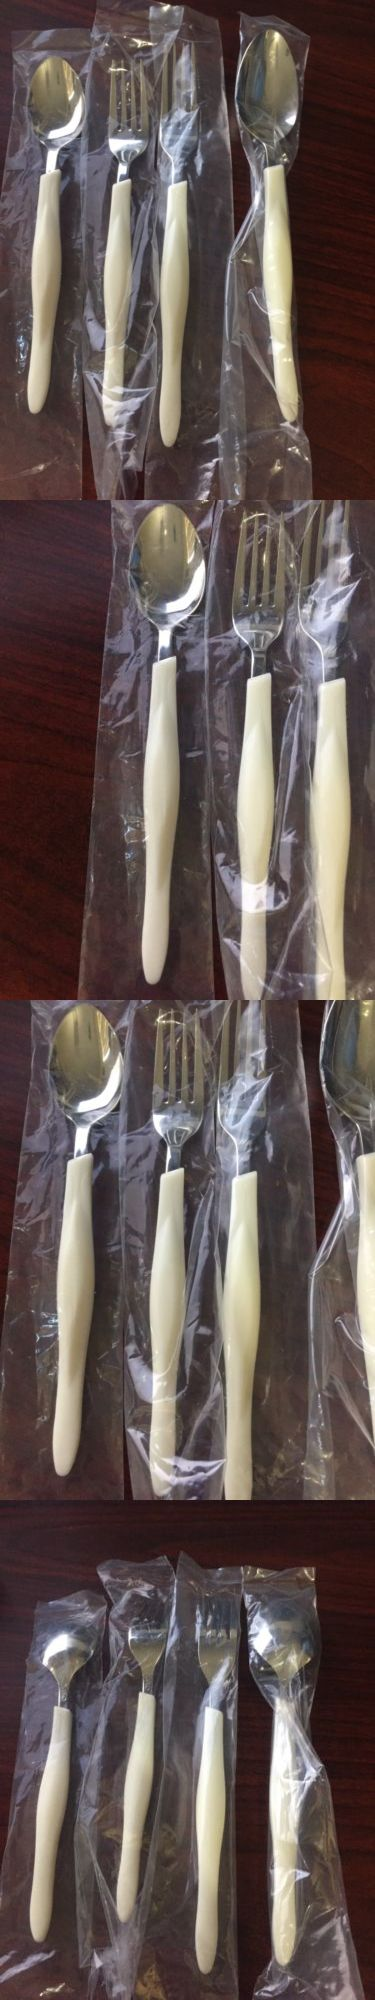 Serving Utensils and Sets 137750: New Nip Cutco Model 1546 White (Pearl) 4-Pc Traditional Flatware Place Setting -> BUY IT NOW ONLY: $84.99 on eBay!